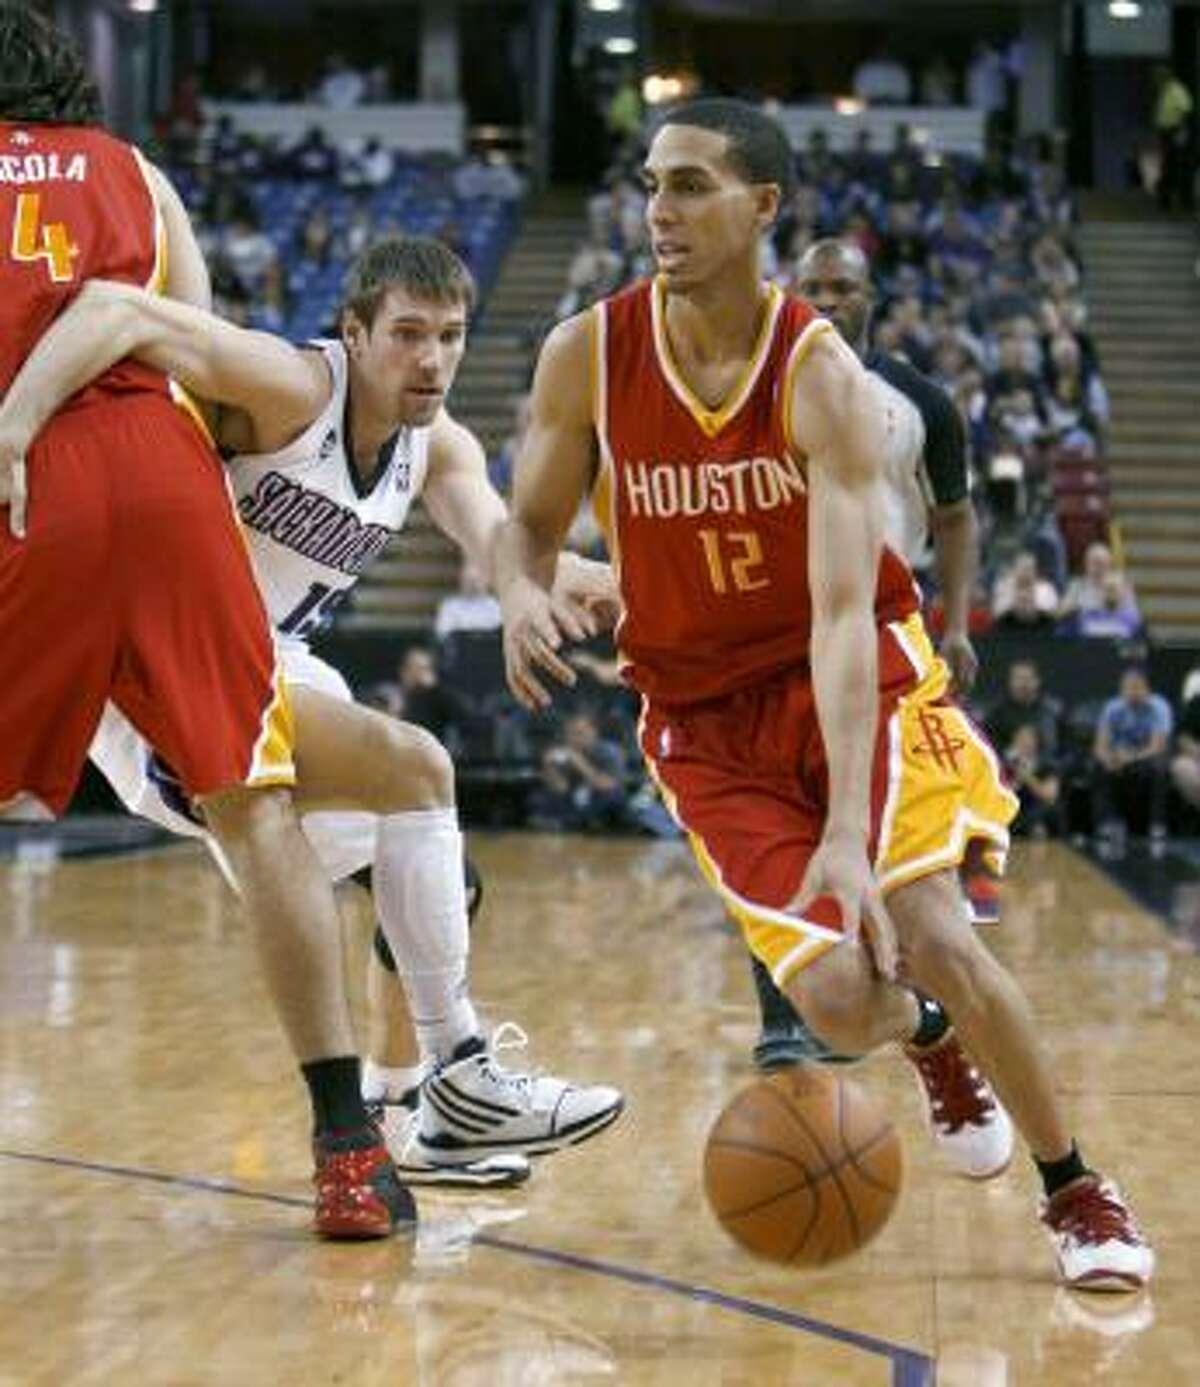 Rockets guard Kevin Martin, right, scored 39 points in his return to Sacramento, where he played before the trade involving Tracy McGrady.